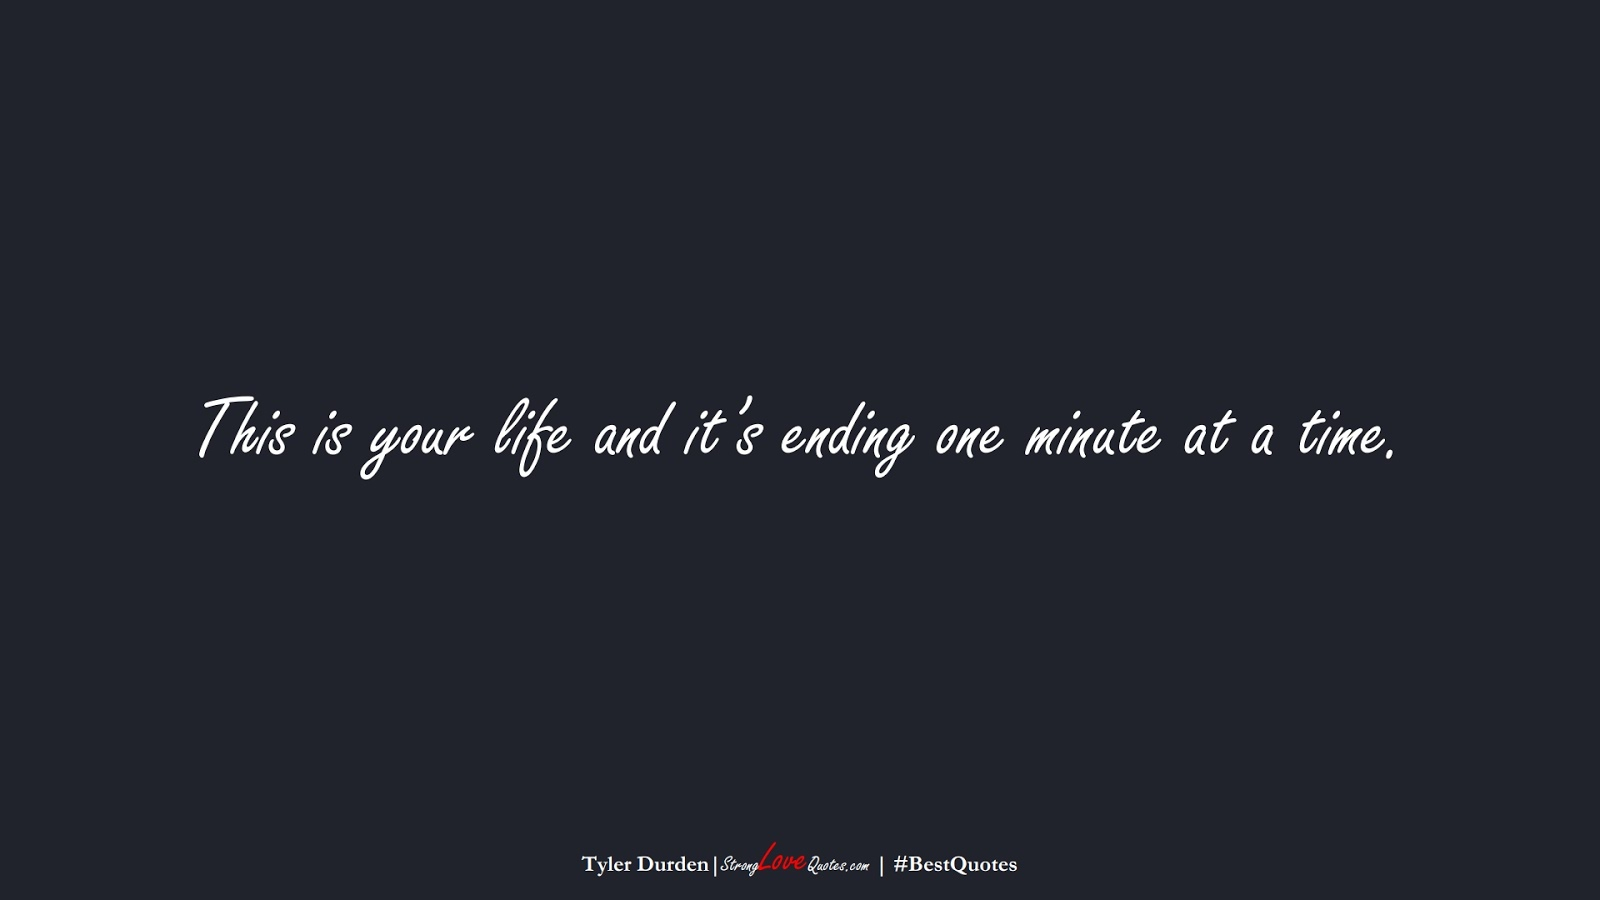 This is your life and it's ending one minute at a time. (Tyler Durden);  #BestQuotes